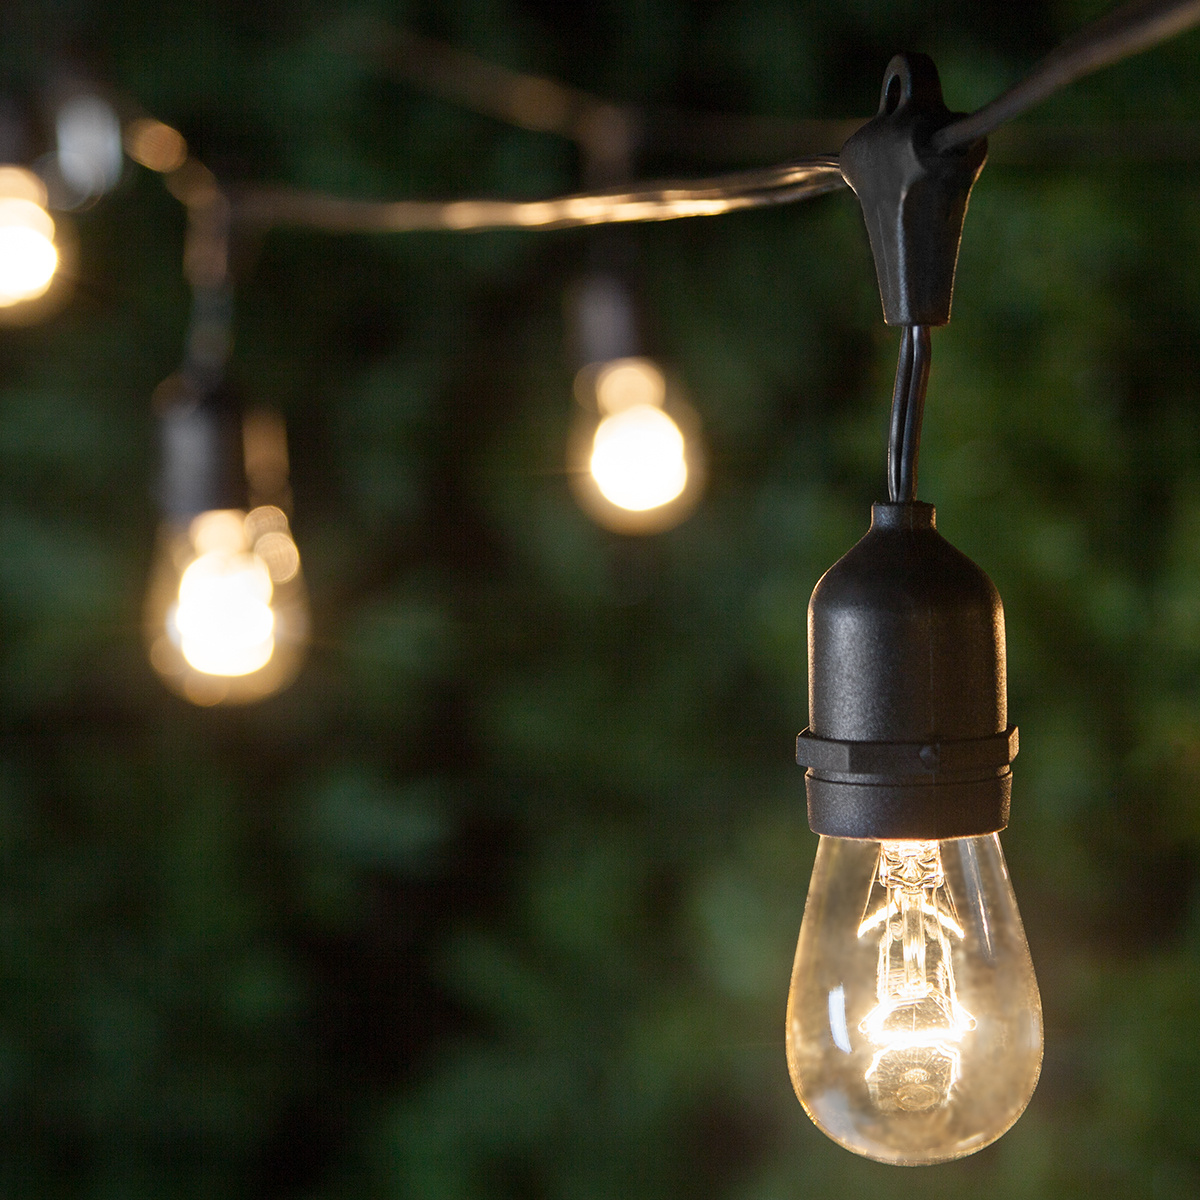 patio lights - commercial clear patio string lights, 24 s14 e26 bulbs black QJKBNJI